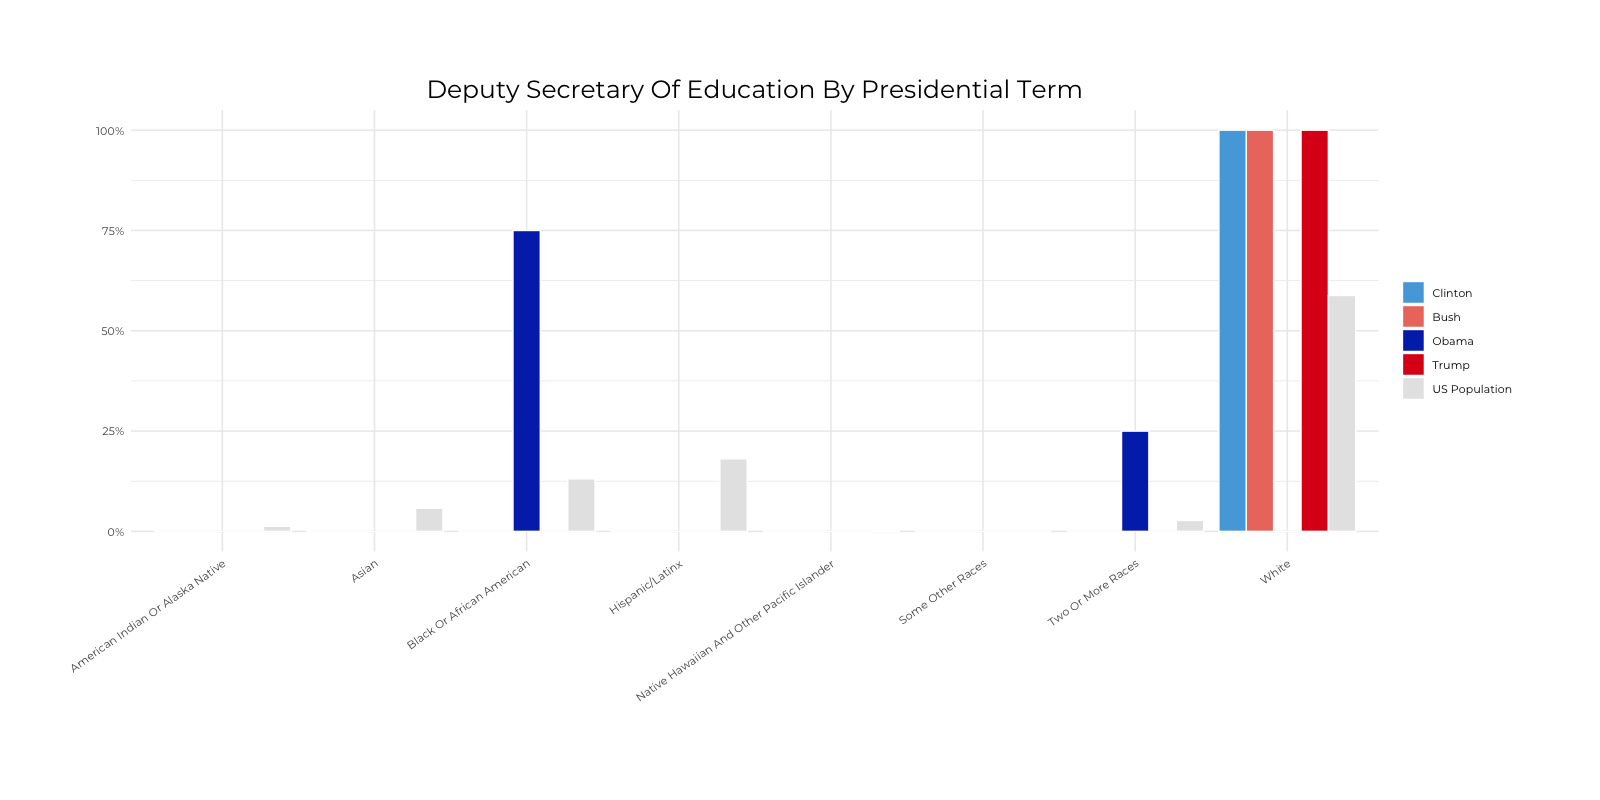 Graph about Racial Composition Comparison of Deputy Secretary of Education by Presidential Terms. More detailed text description below.